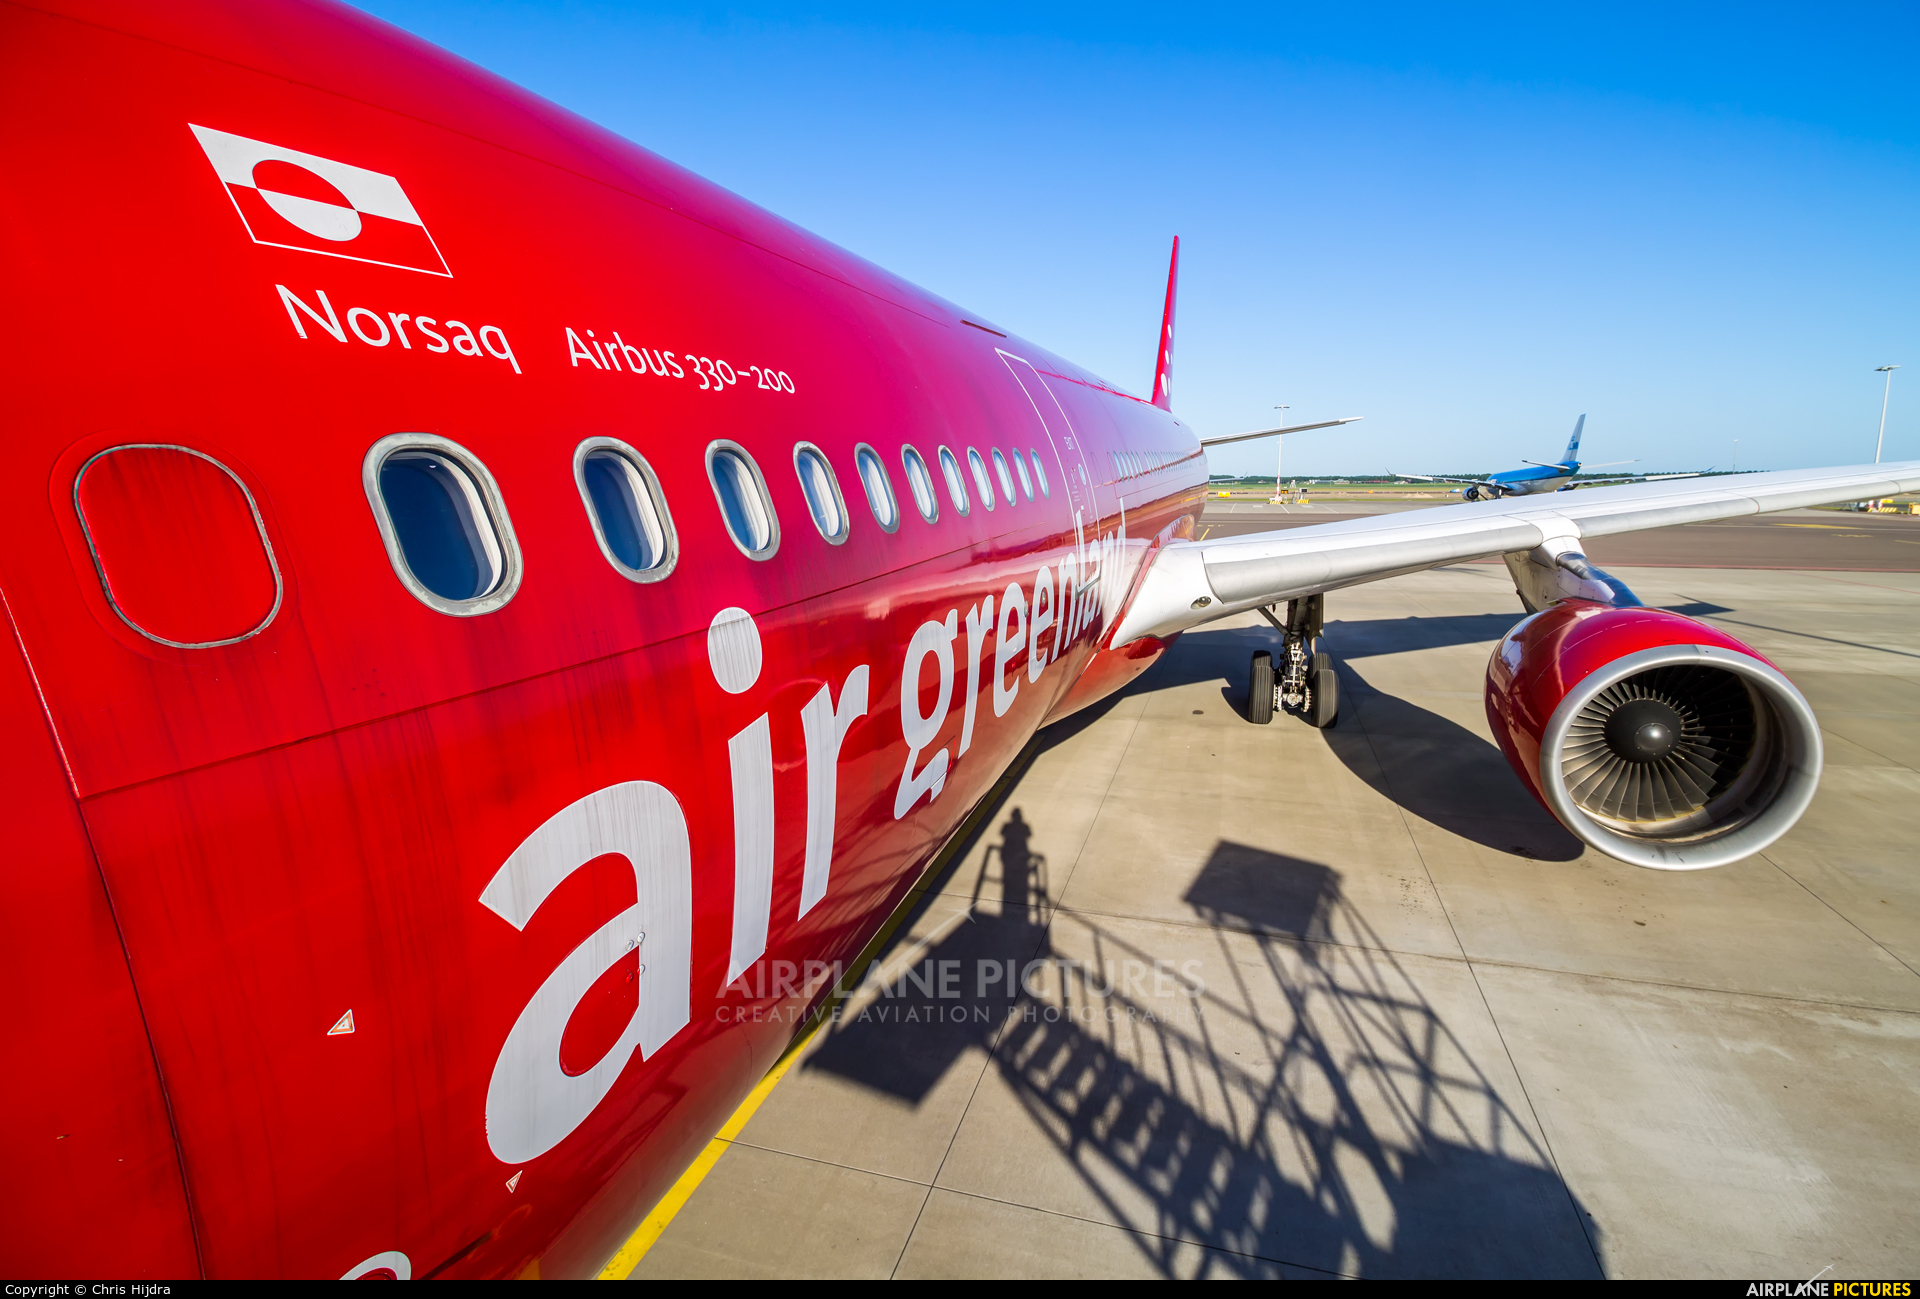 Air Greenland OY-GRN aircraft at Undisclosed location